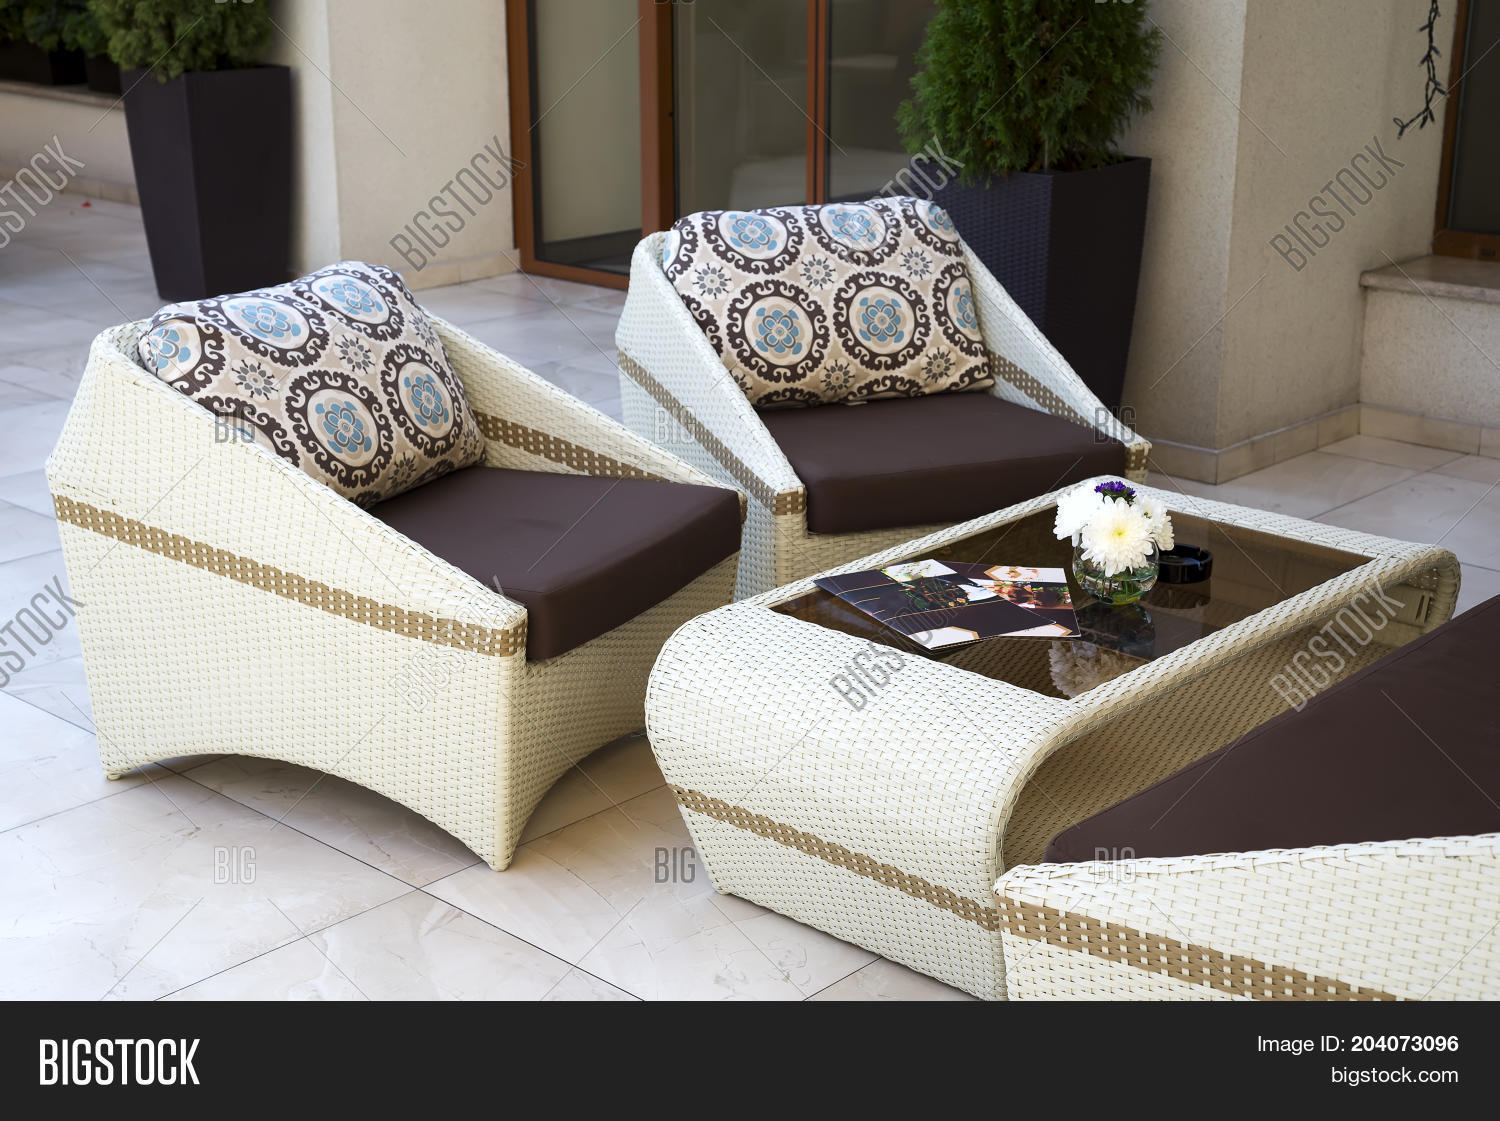 Empty Cafe With Rattan Wicker Armchairs And Table On Summer Garden Terrace  Outdoor, Free Space